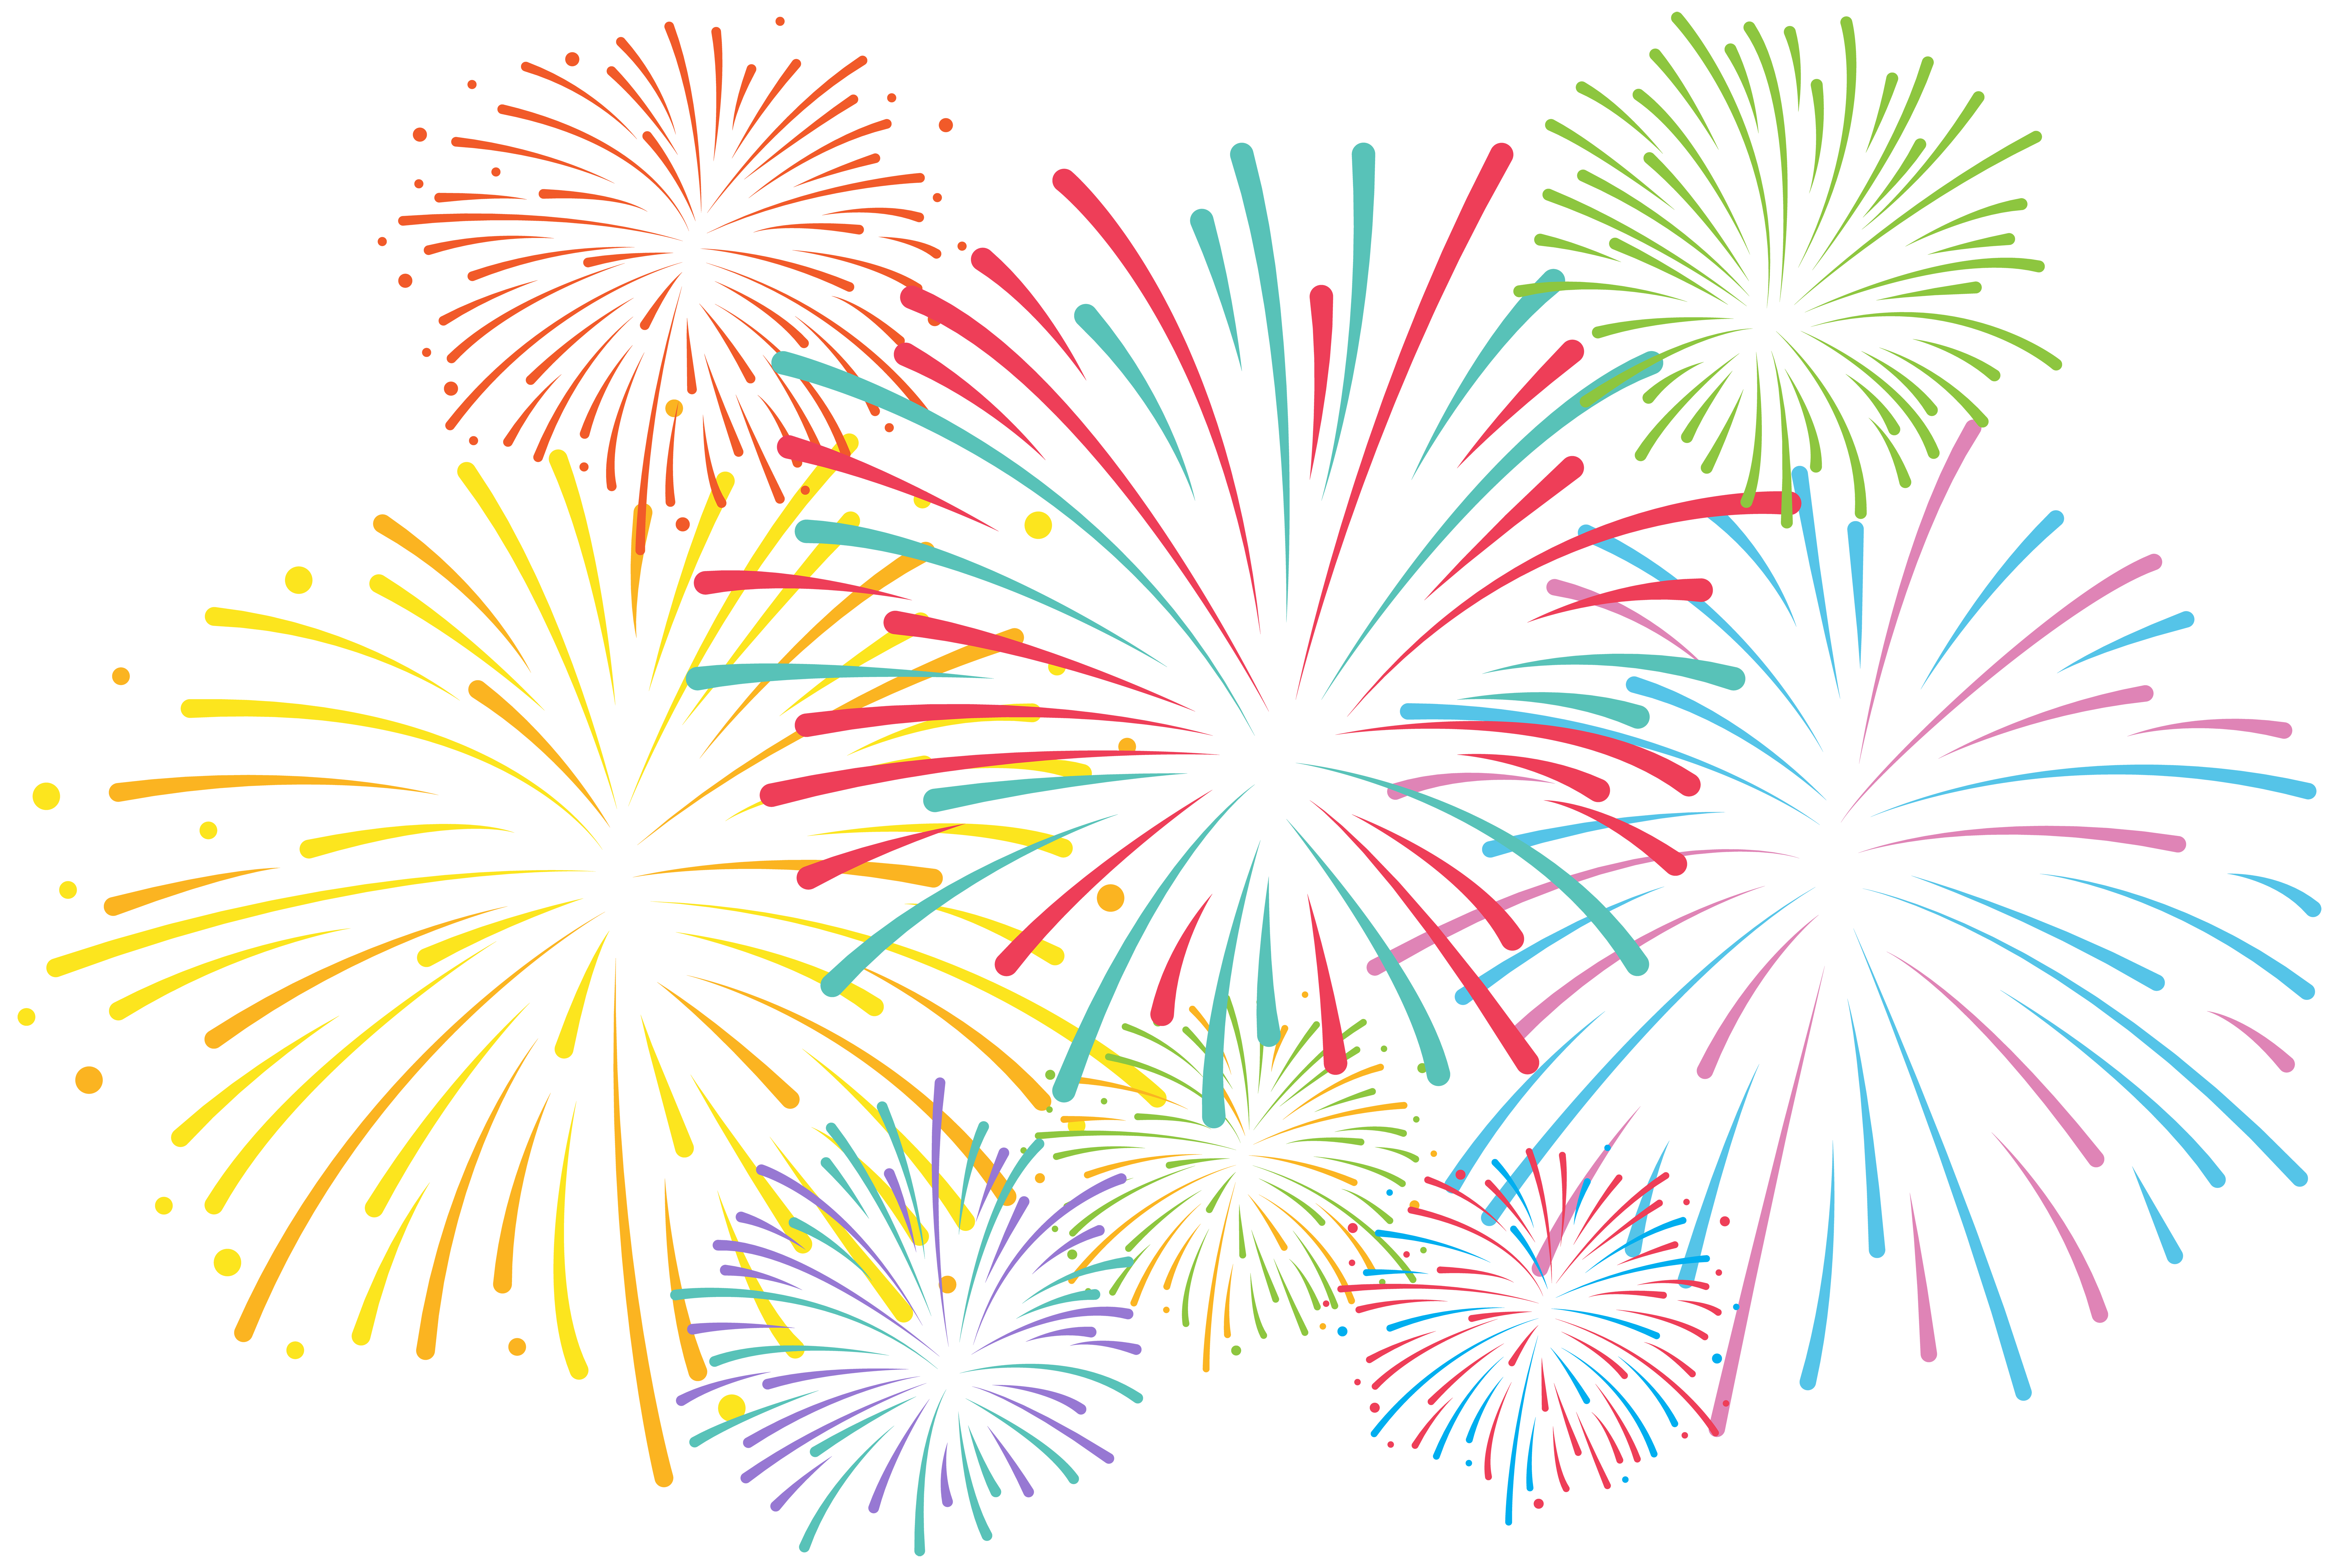 Fireworks clip art fireworks animations clipart 2 image 3.